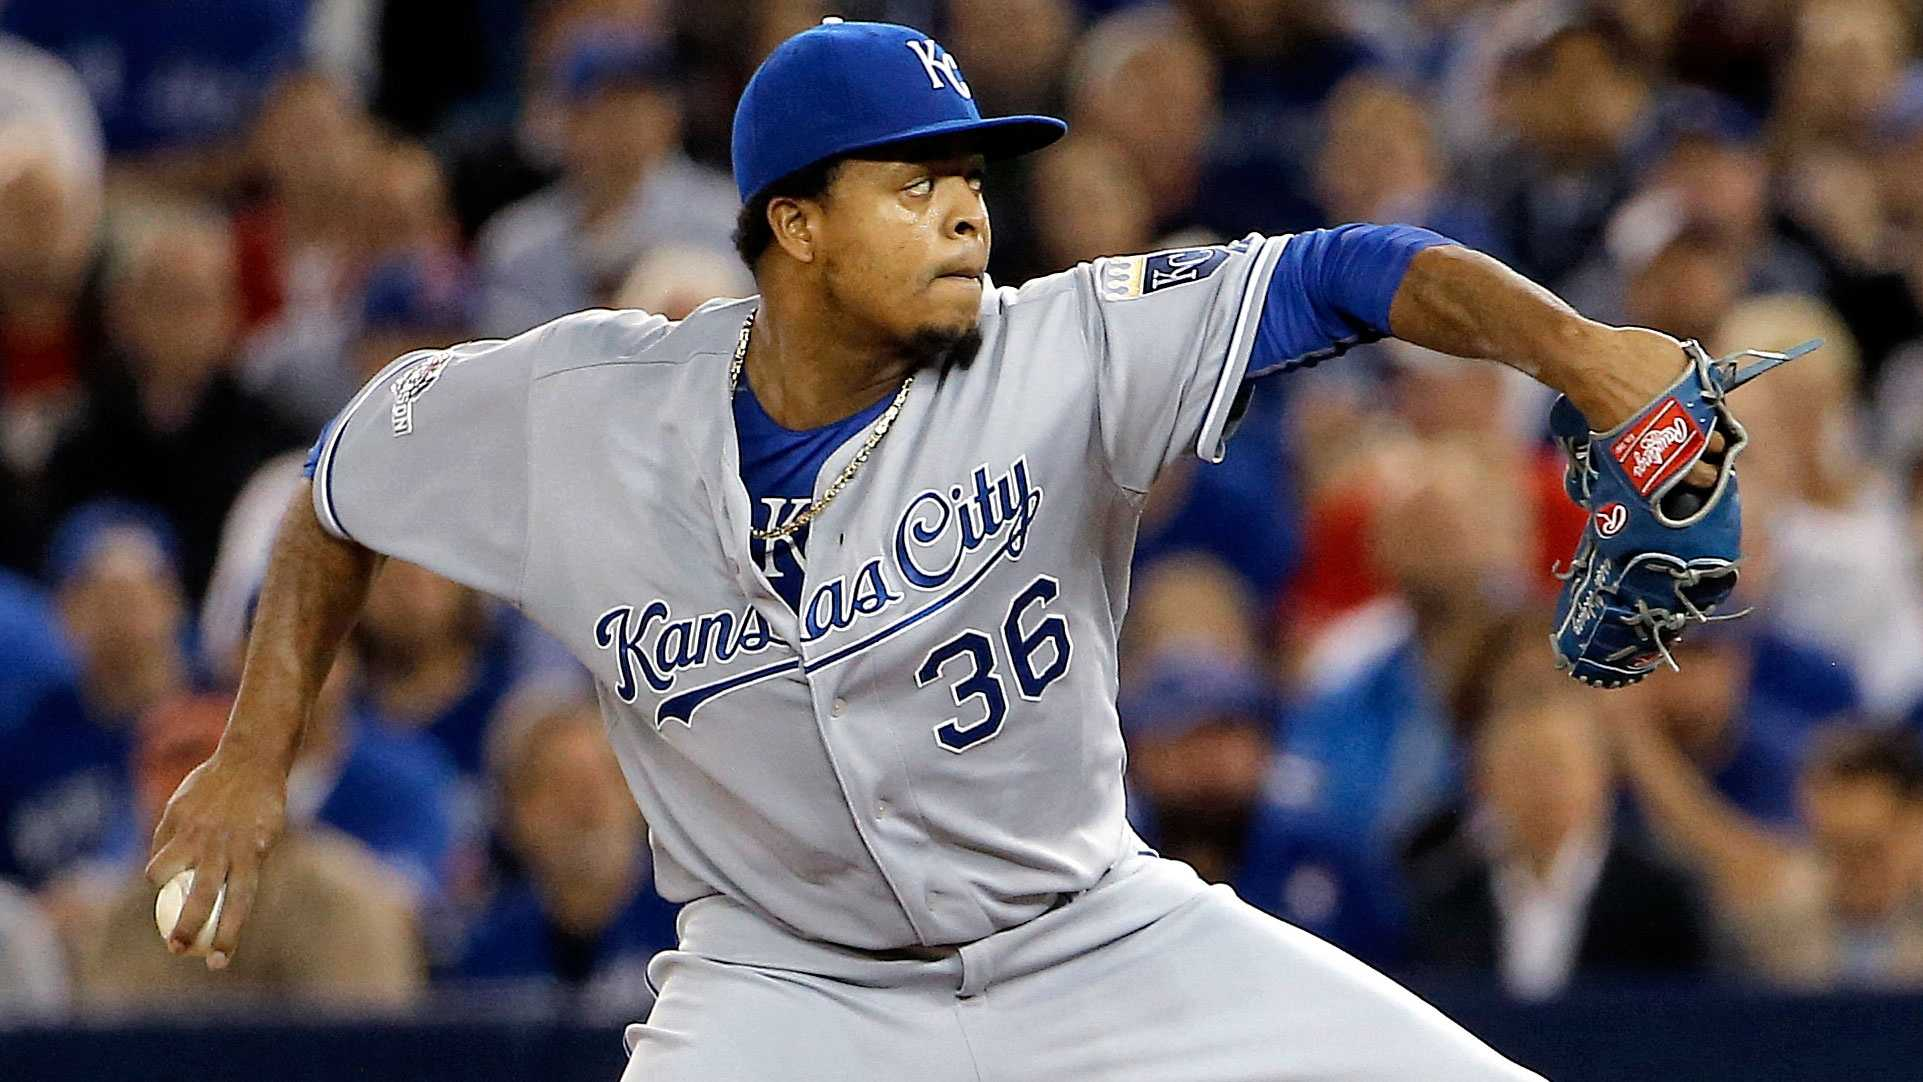 Edinson Volquez pitched well through five innings, but was outdueled by Toronto's Marco Estrada in Game 5 of the ALCS.